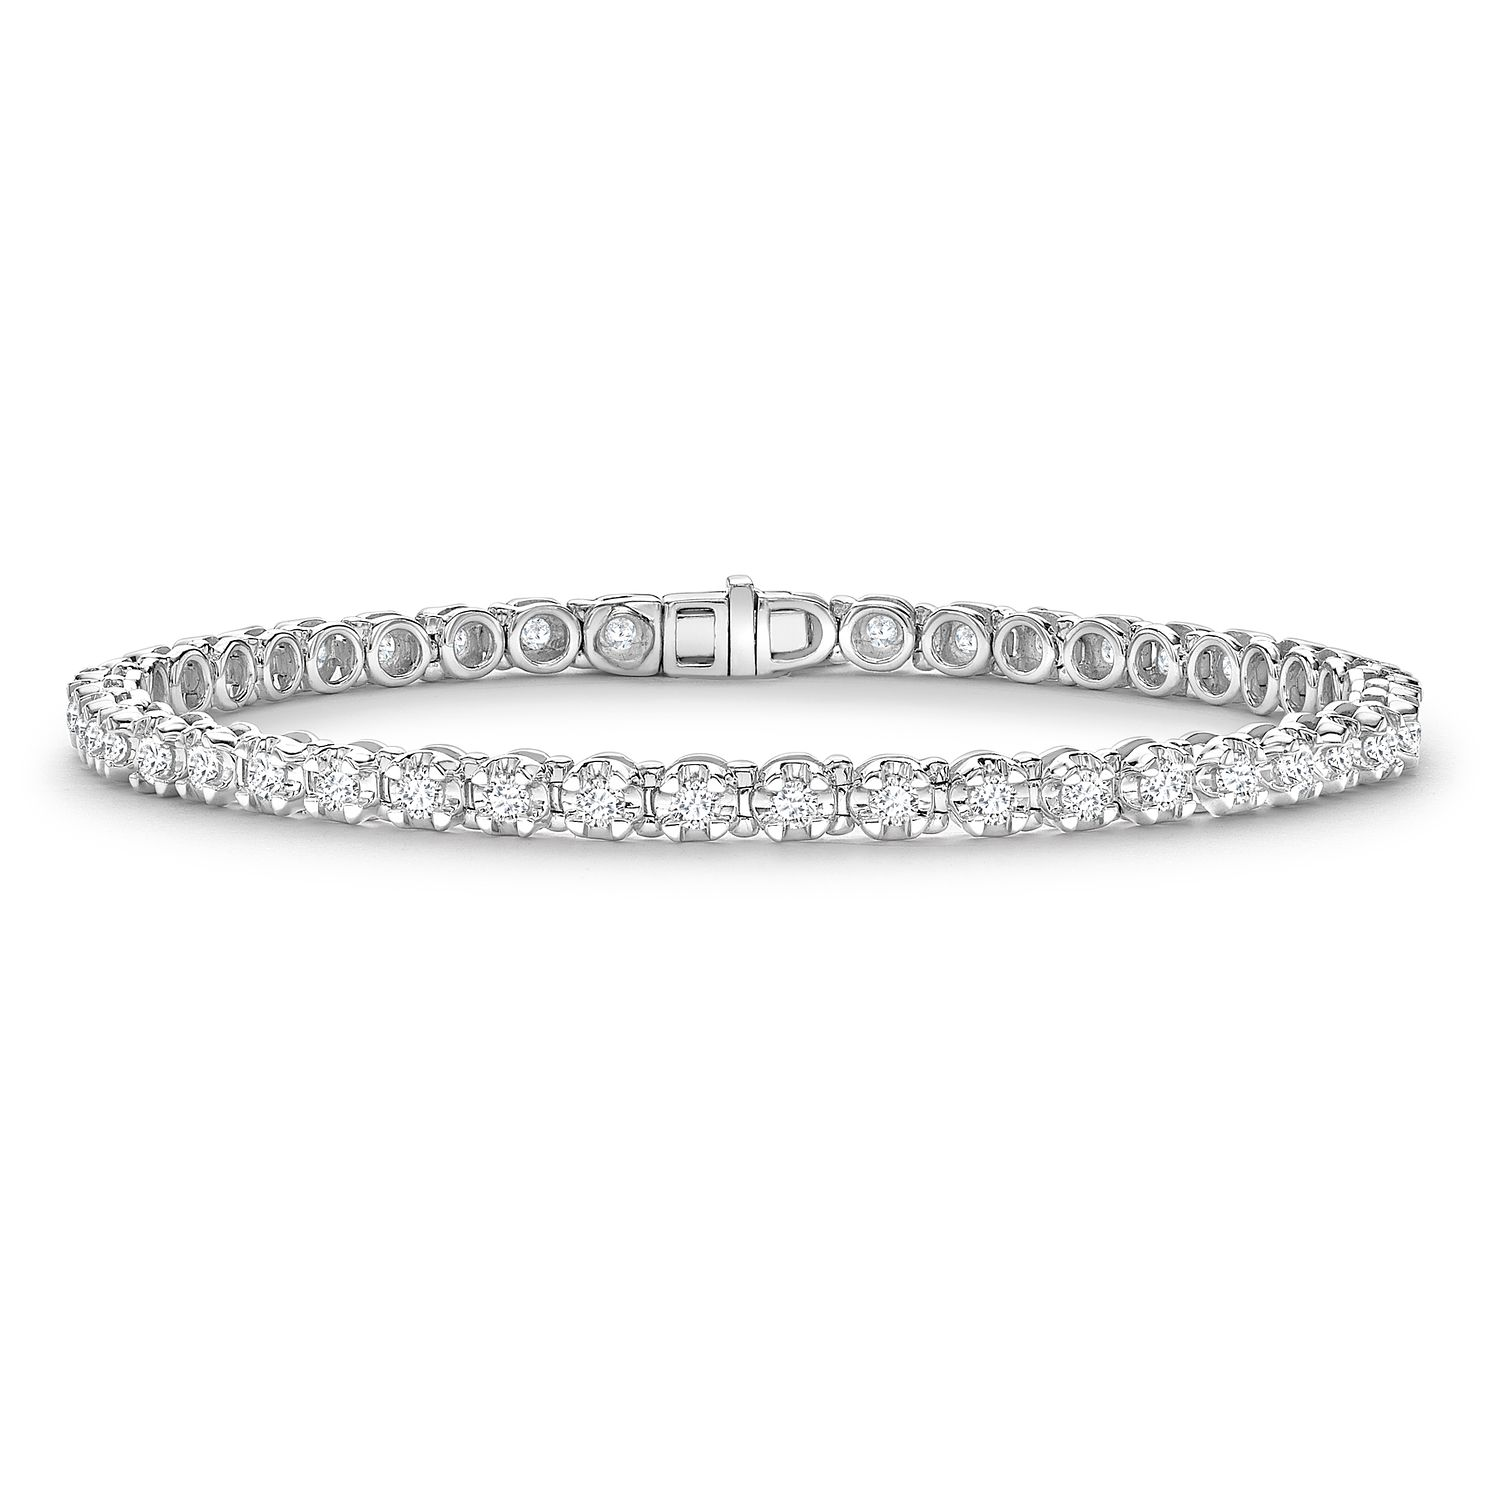 this solid pave bangle out diamond day the gold with night bracelet bangles stunning round white into bracelets